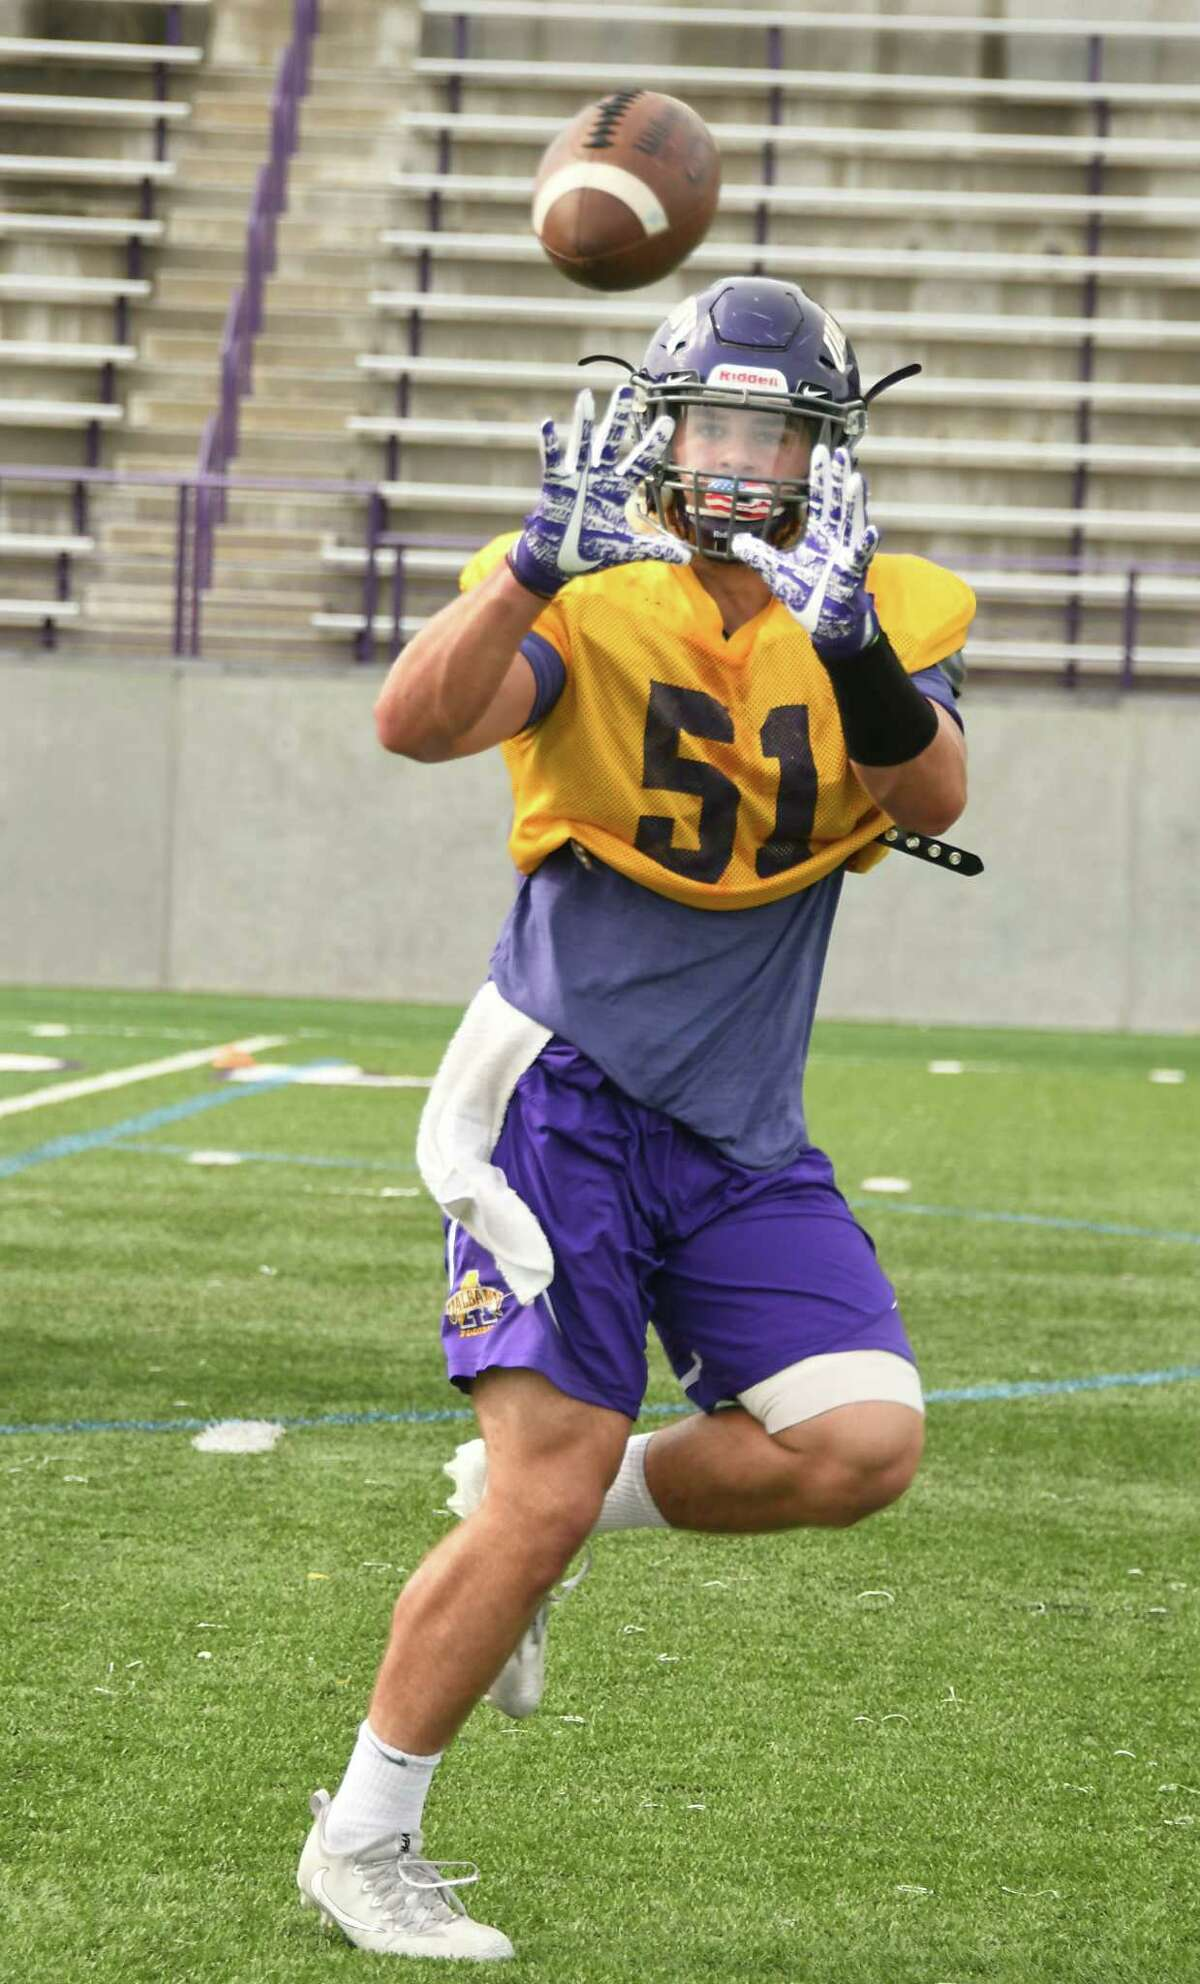 University at Albany linebacker Nate Hatalsky catches a pass during practice at Casey Stadium on Wednesday, Sept. 20, 2017 in Albany, N.Y. (Lori Van Buren / Times Union)